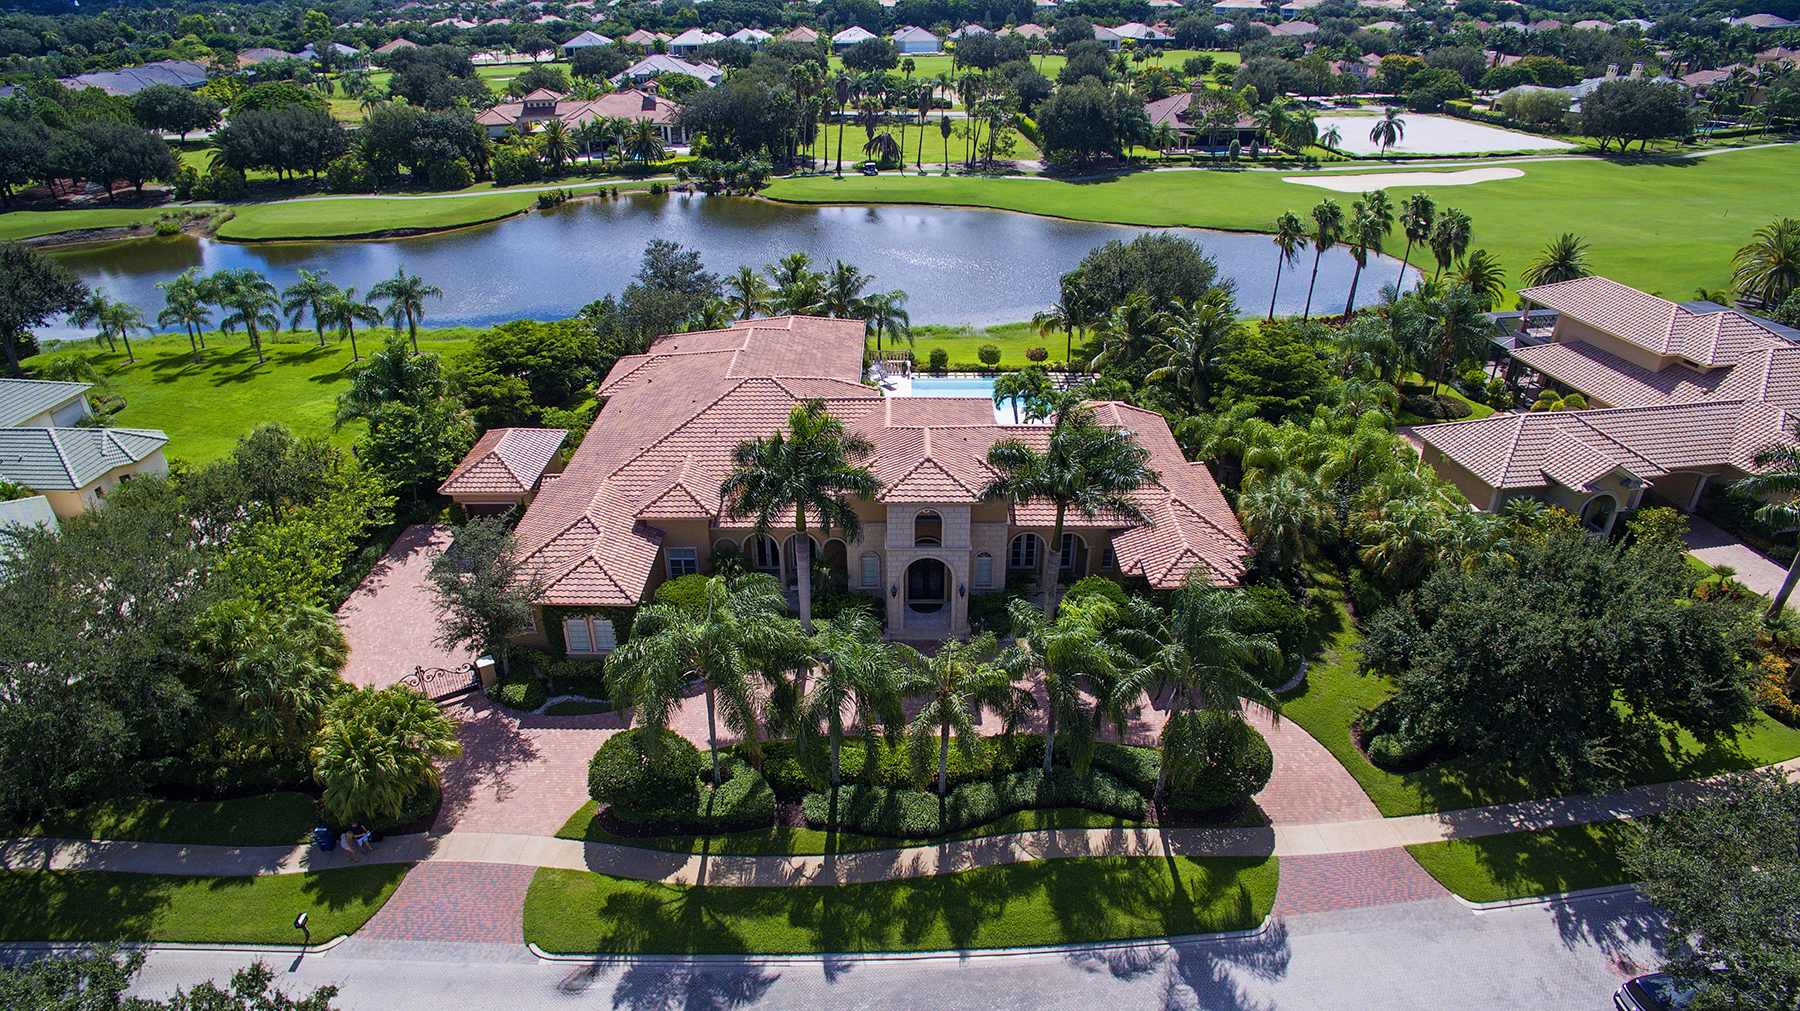 Single Family Home for Sale at QUAIL WEST 28881 Girard Terr Naples, Florida, 34119 United States